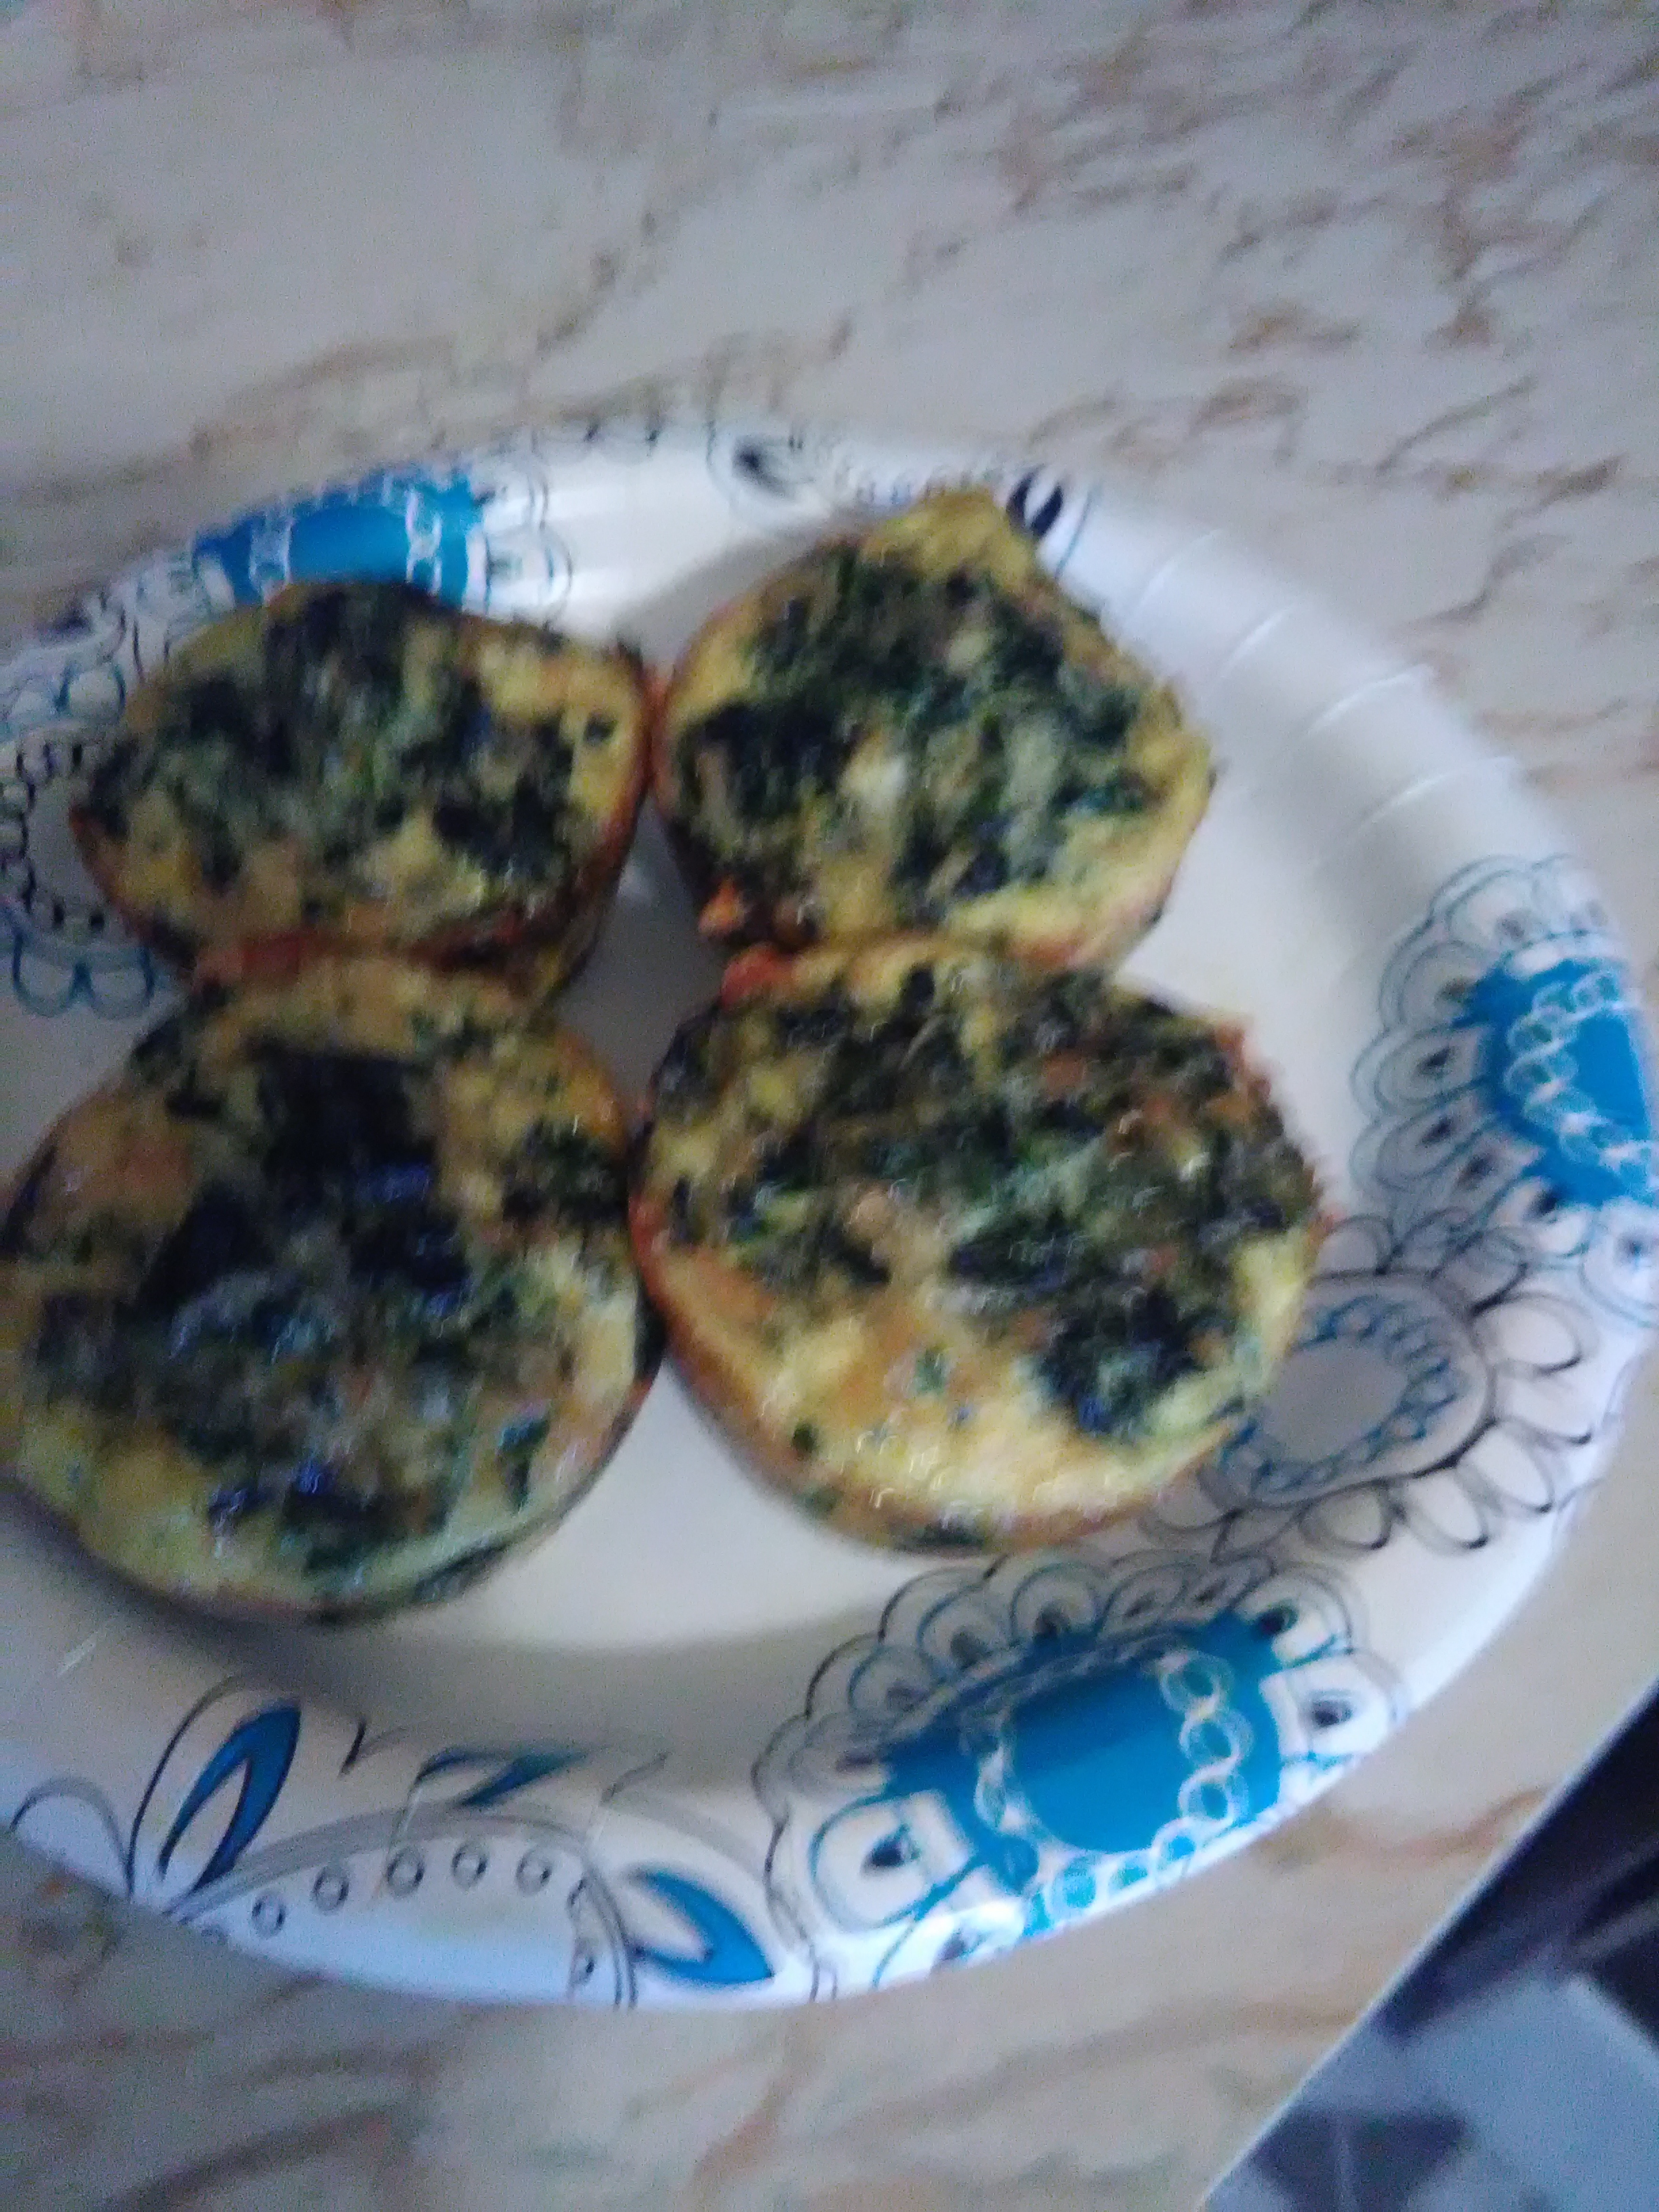 Crustless Spinach Quiche dawnsmilesbright